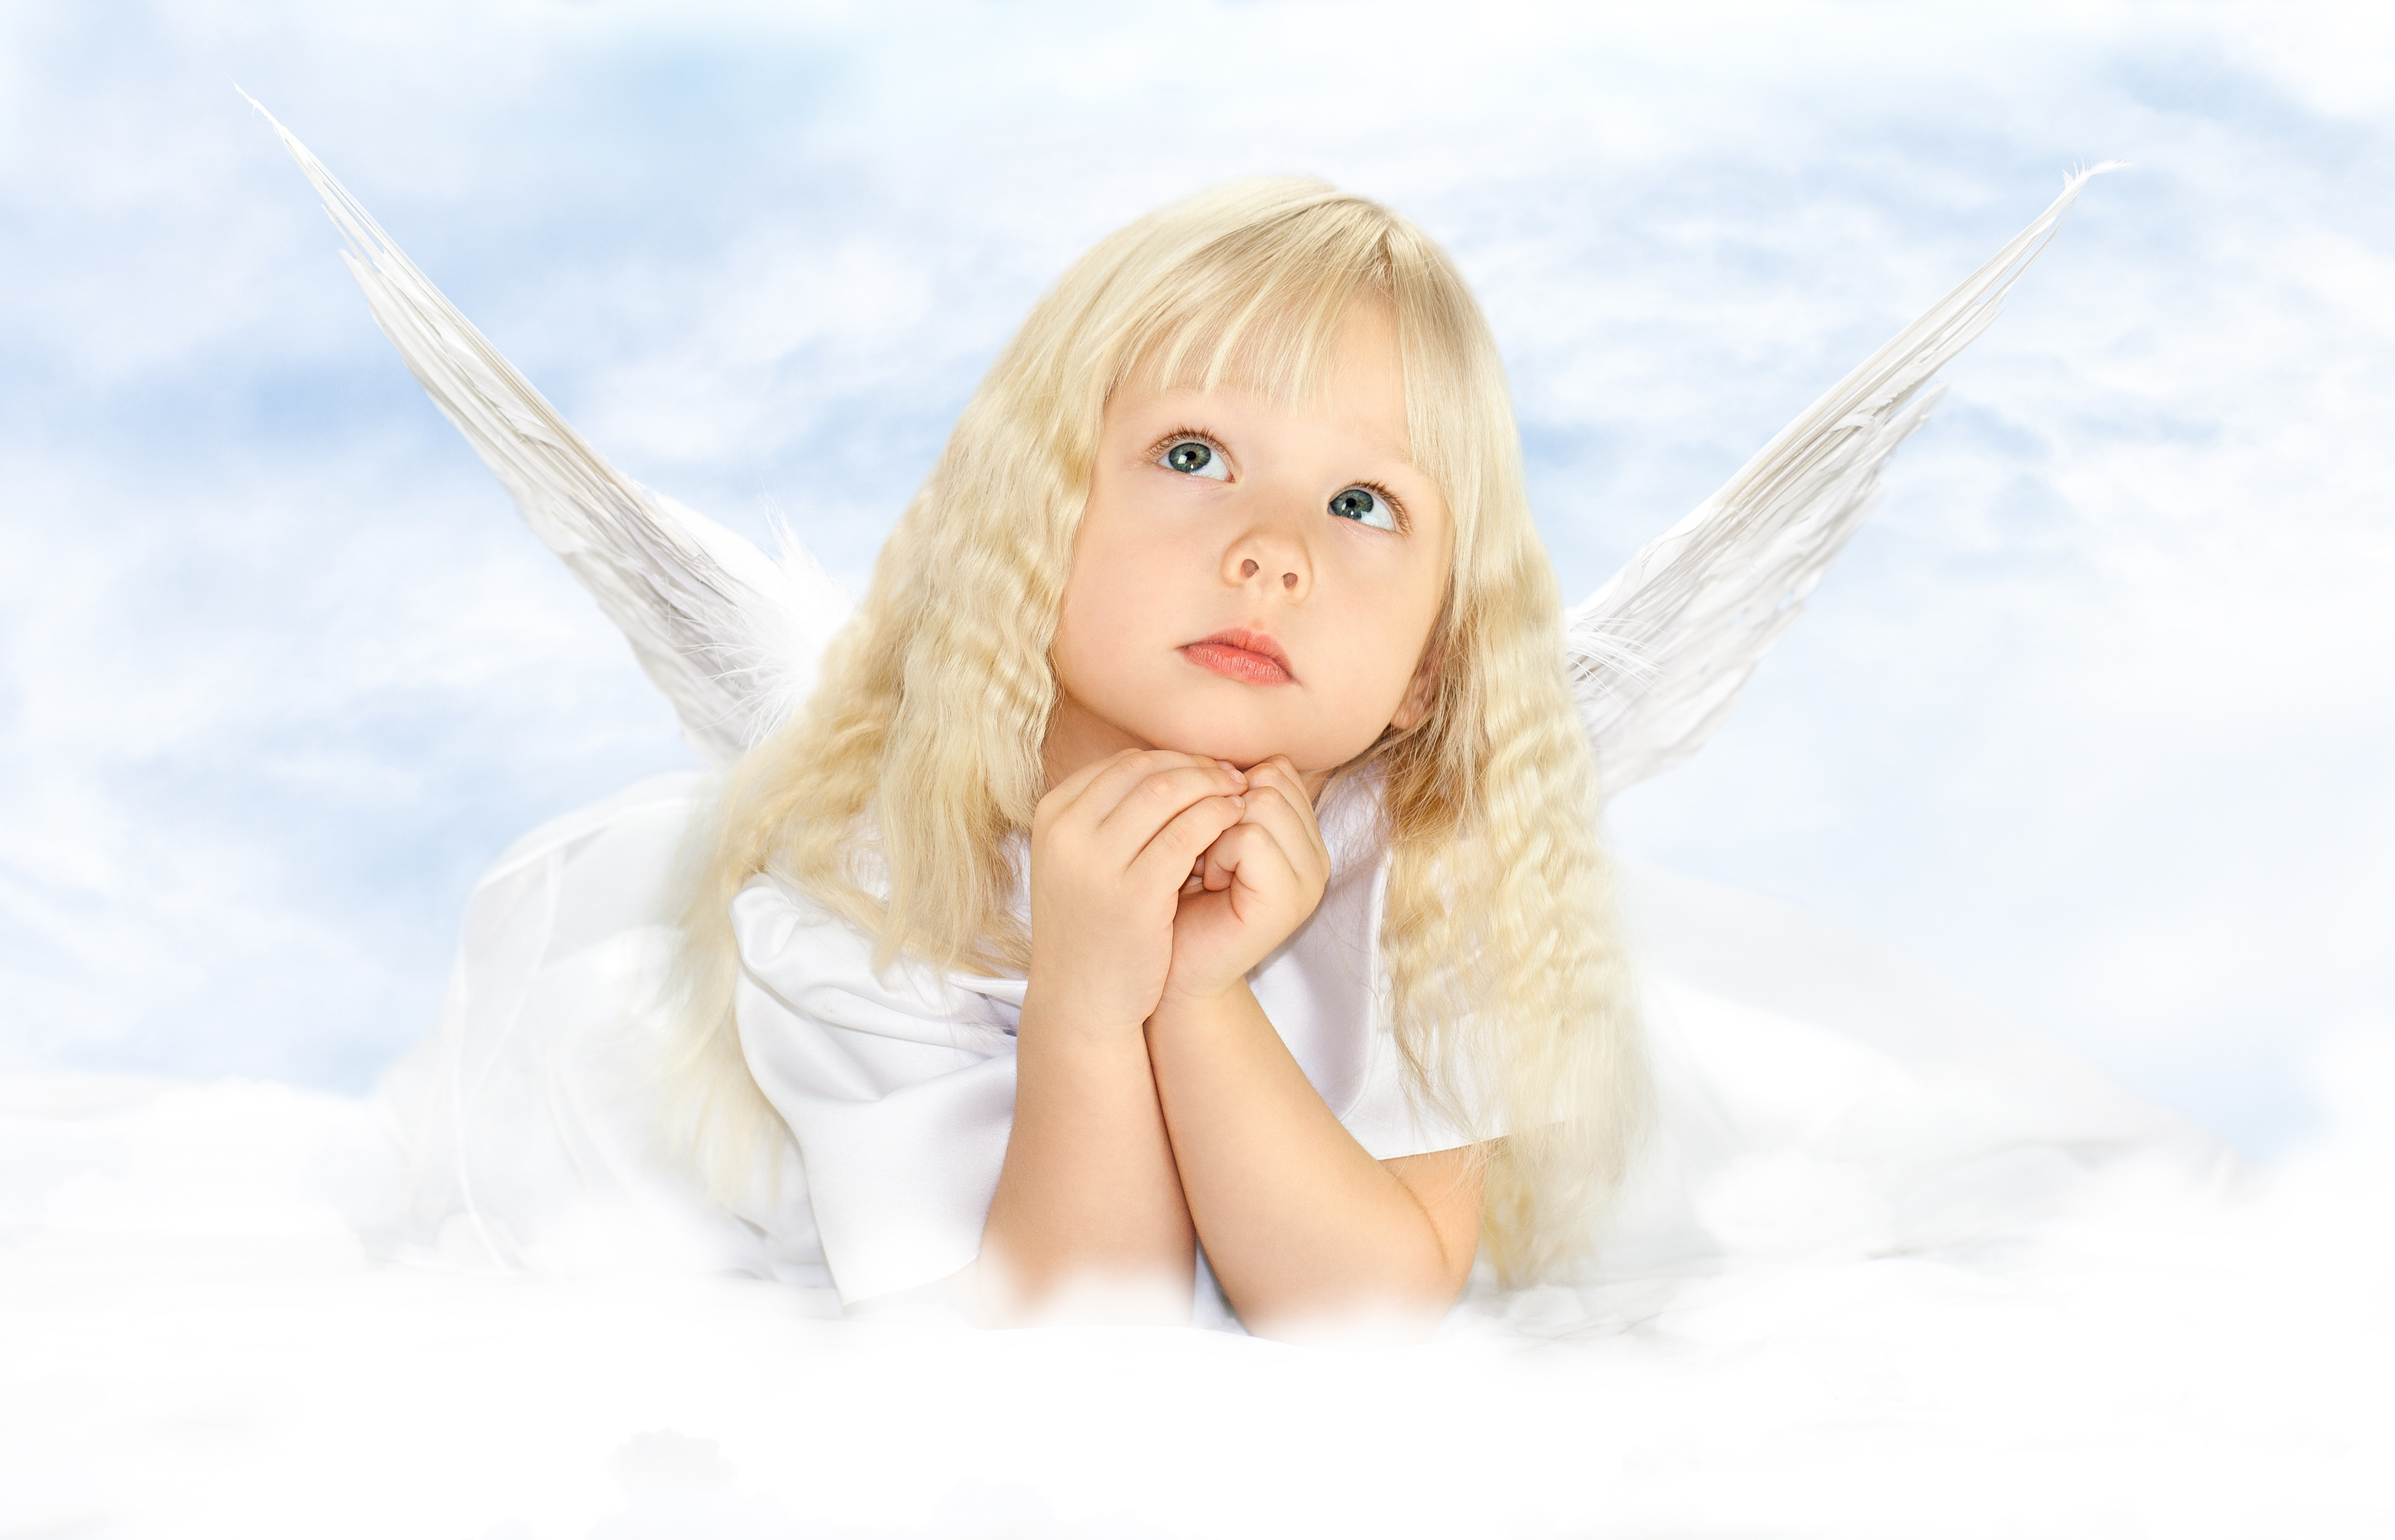 Angel Children  Wwwimgkidcom  The Image Kid Has It. Hp Proliant Dl580 G2 Server Mayo Clinic Acne. Aflac Life Insurance Reviews. Wake Forest University P A Program. Invesco Diversified Dividend Fund. Degree In Sports Administration. What Is A Balance Transfer On A Credit Card. Help Desk Software Packages Pa Schools In Mn. Huntsville Divorce Attorneys Pre Nod Leads